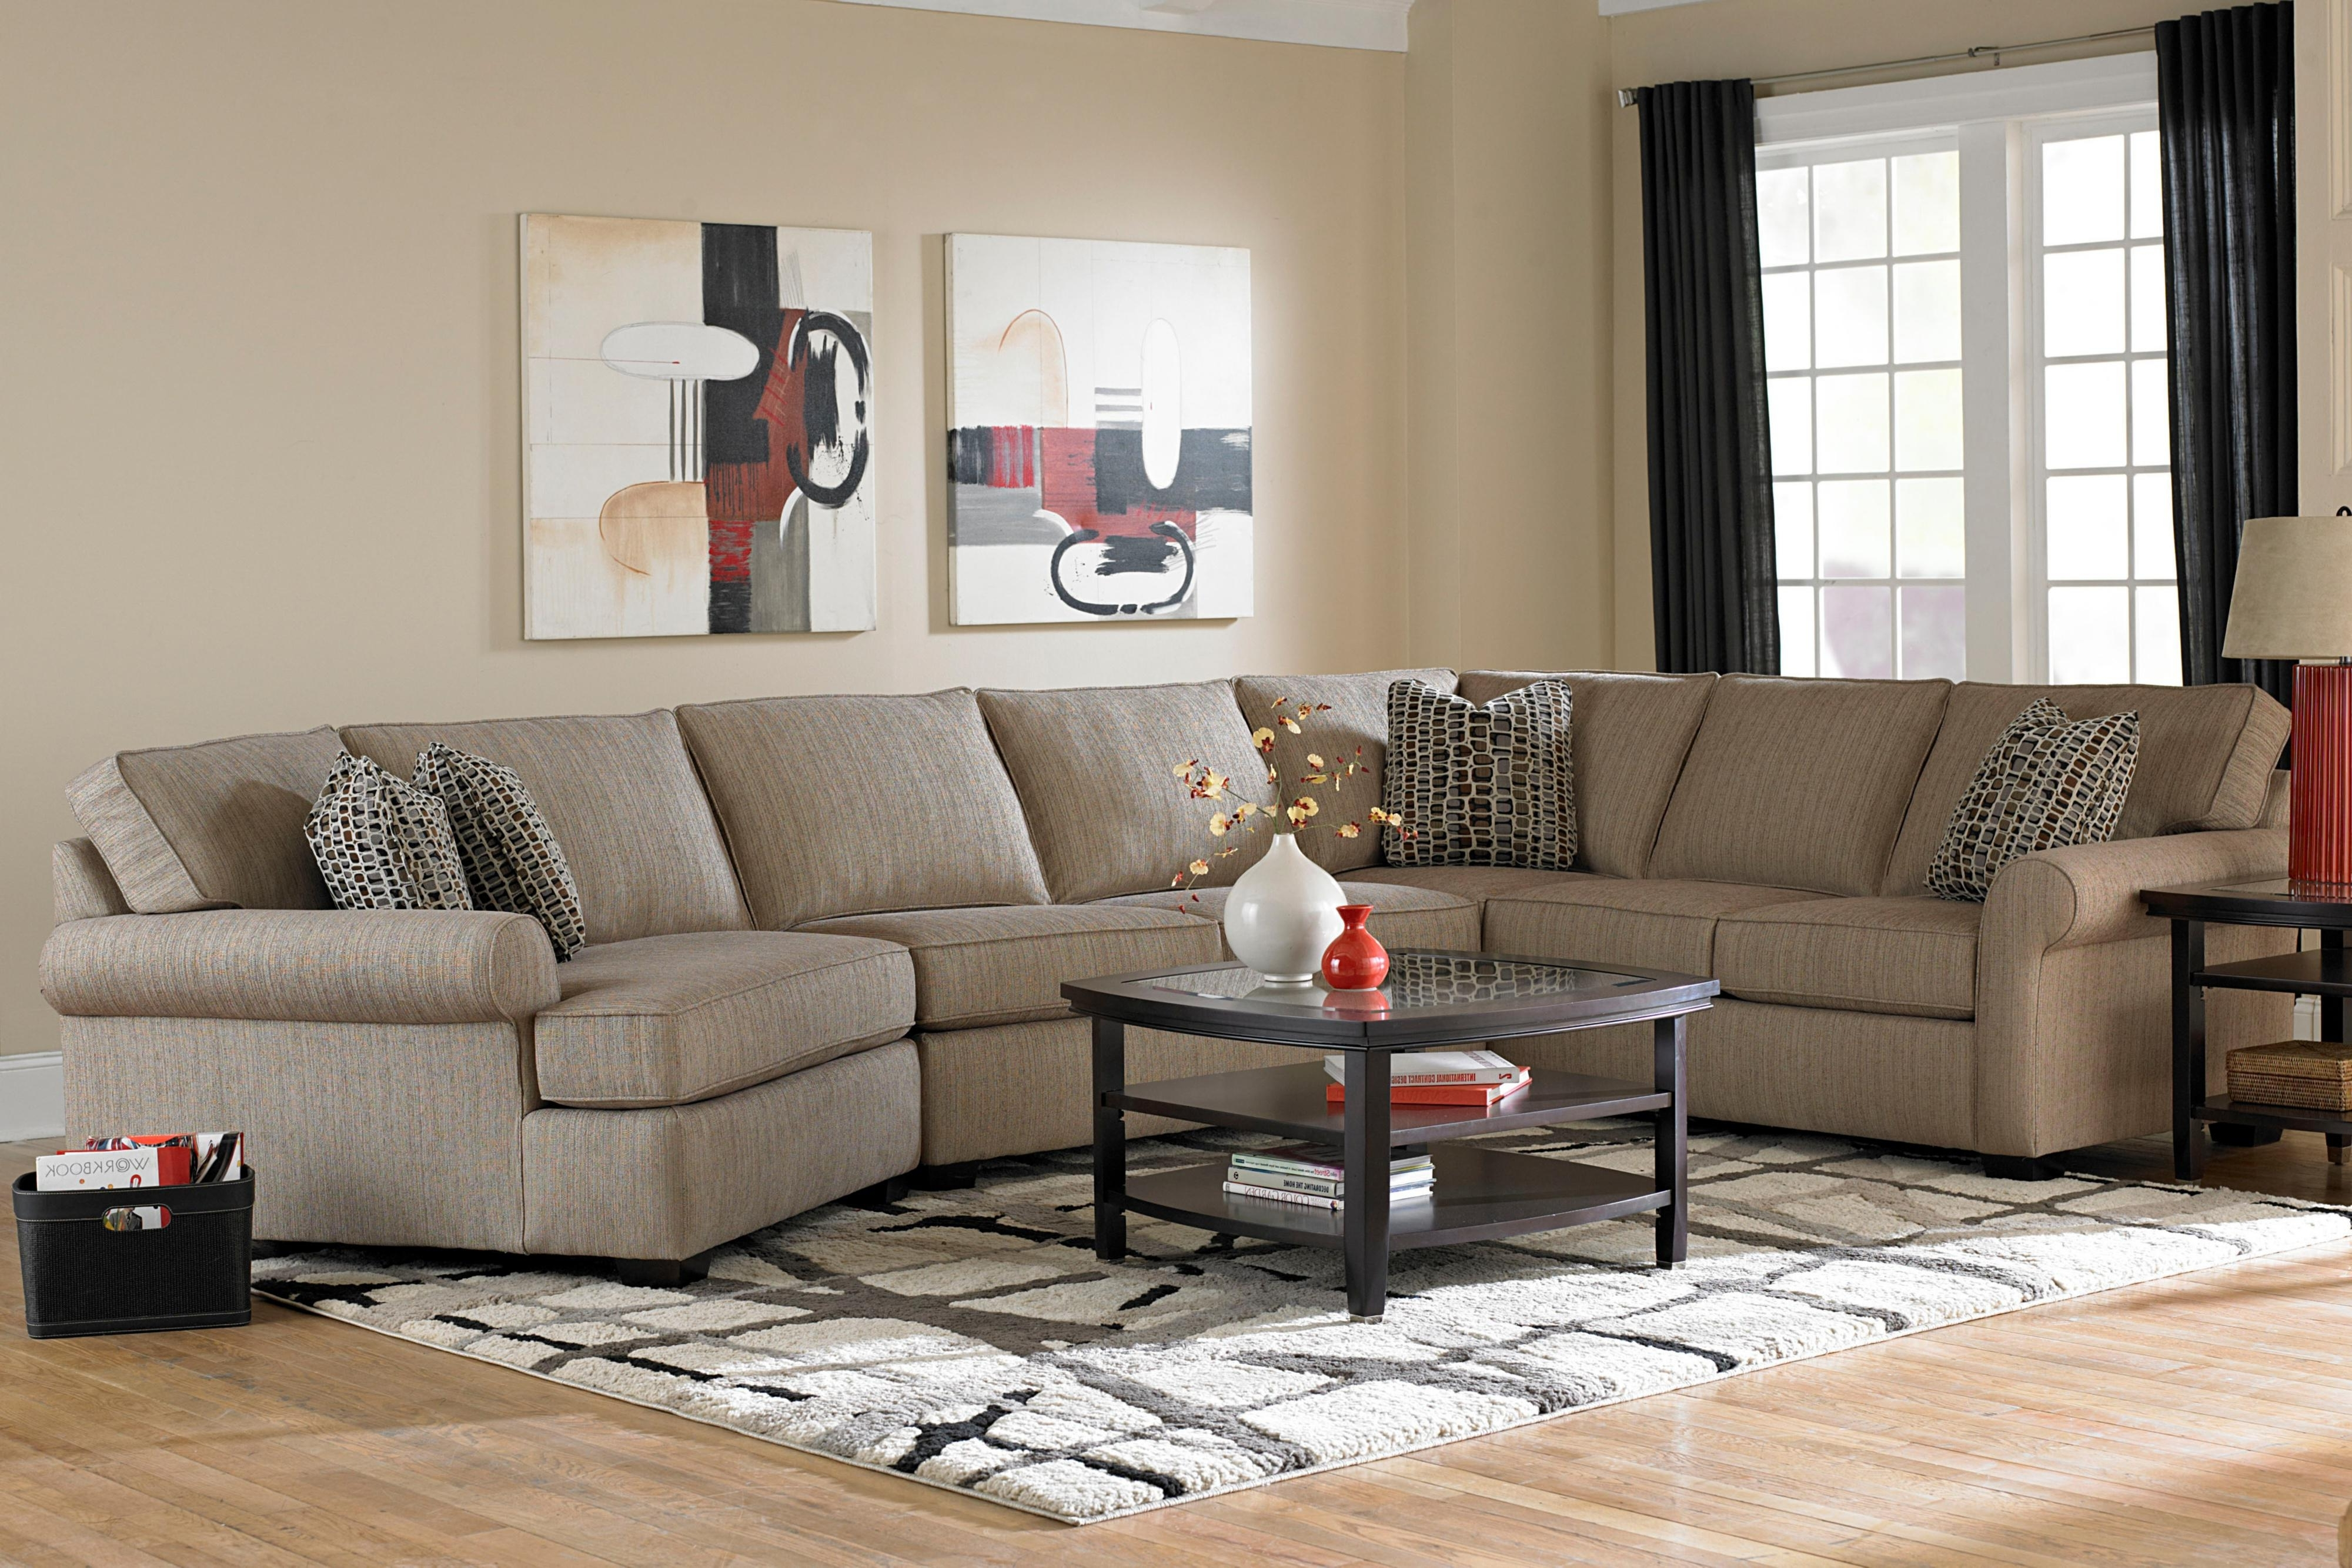 Widely Used Huntsville Al Sectional Sofas Within Broyhill Furniture Ethan Transitional Sectional Sofa With Right (View 20 of 20)